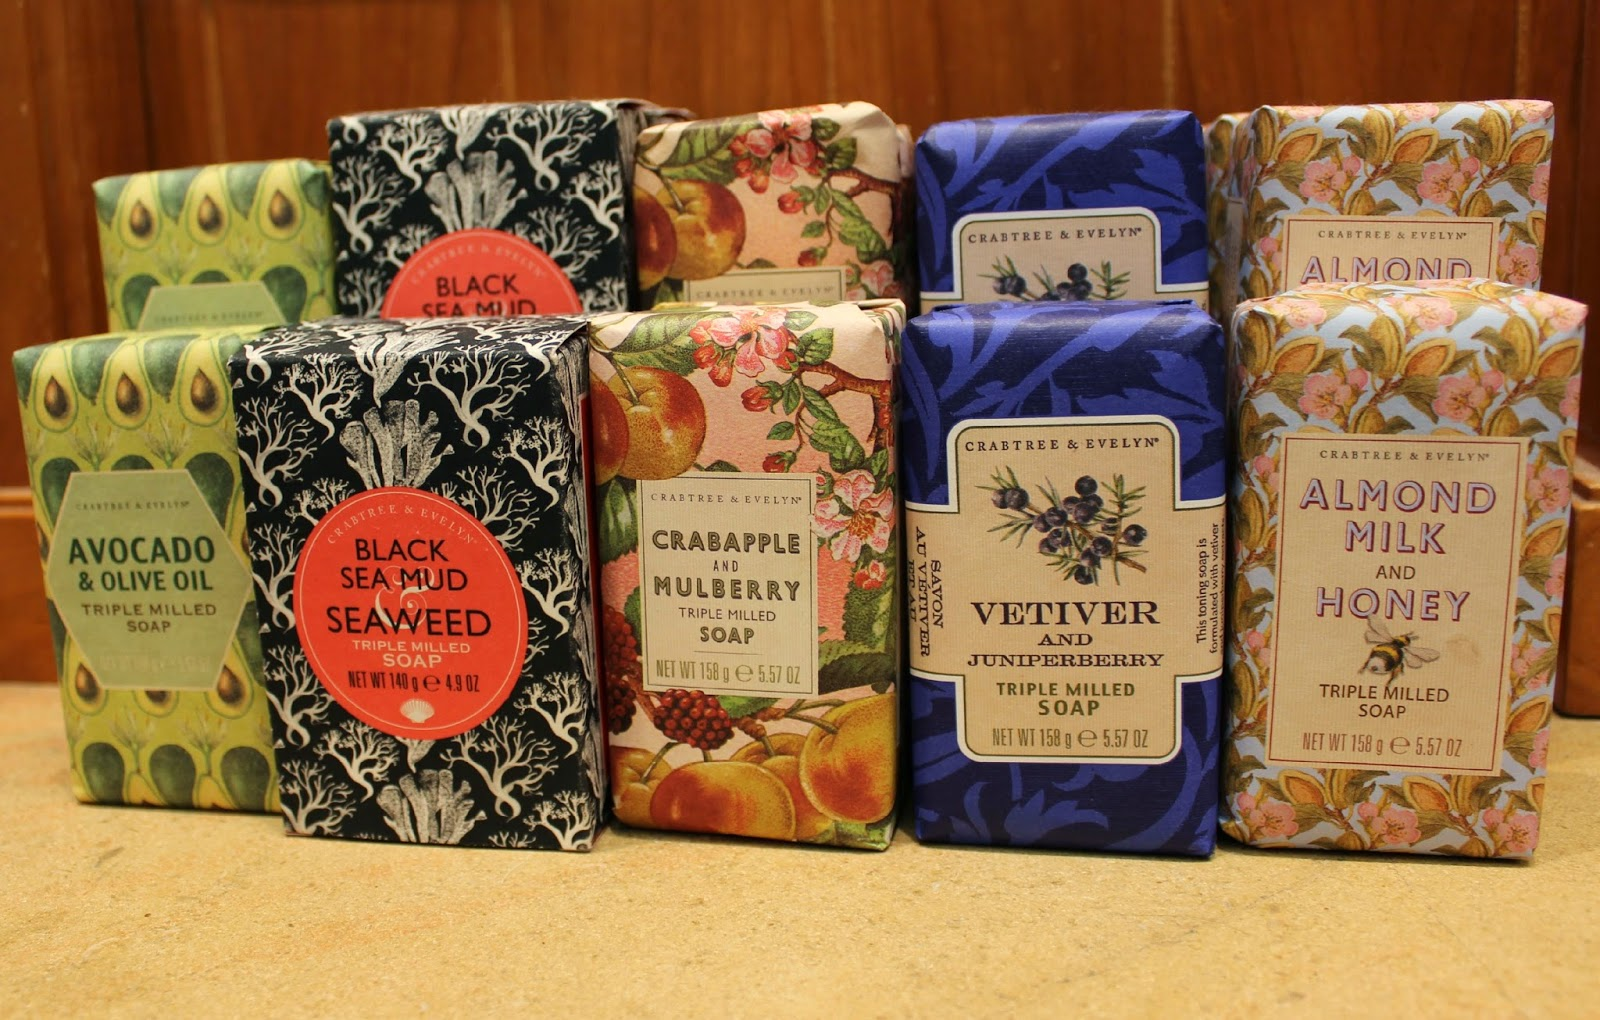 A picture of Crabtree & Evelyn Soaps